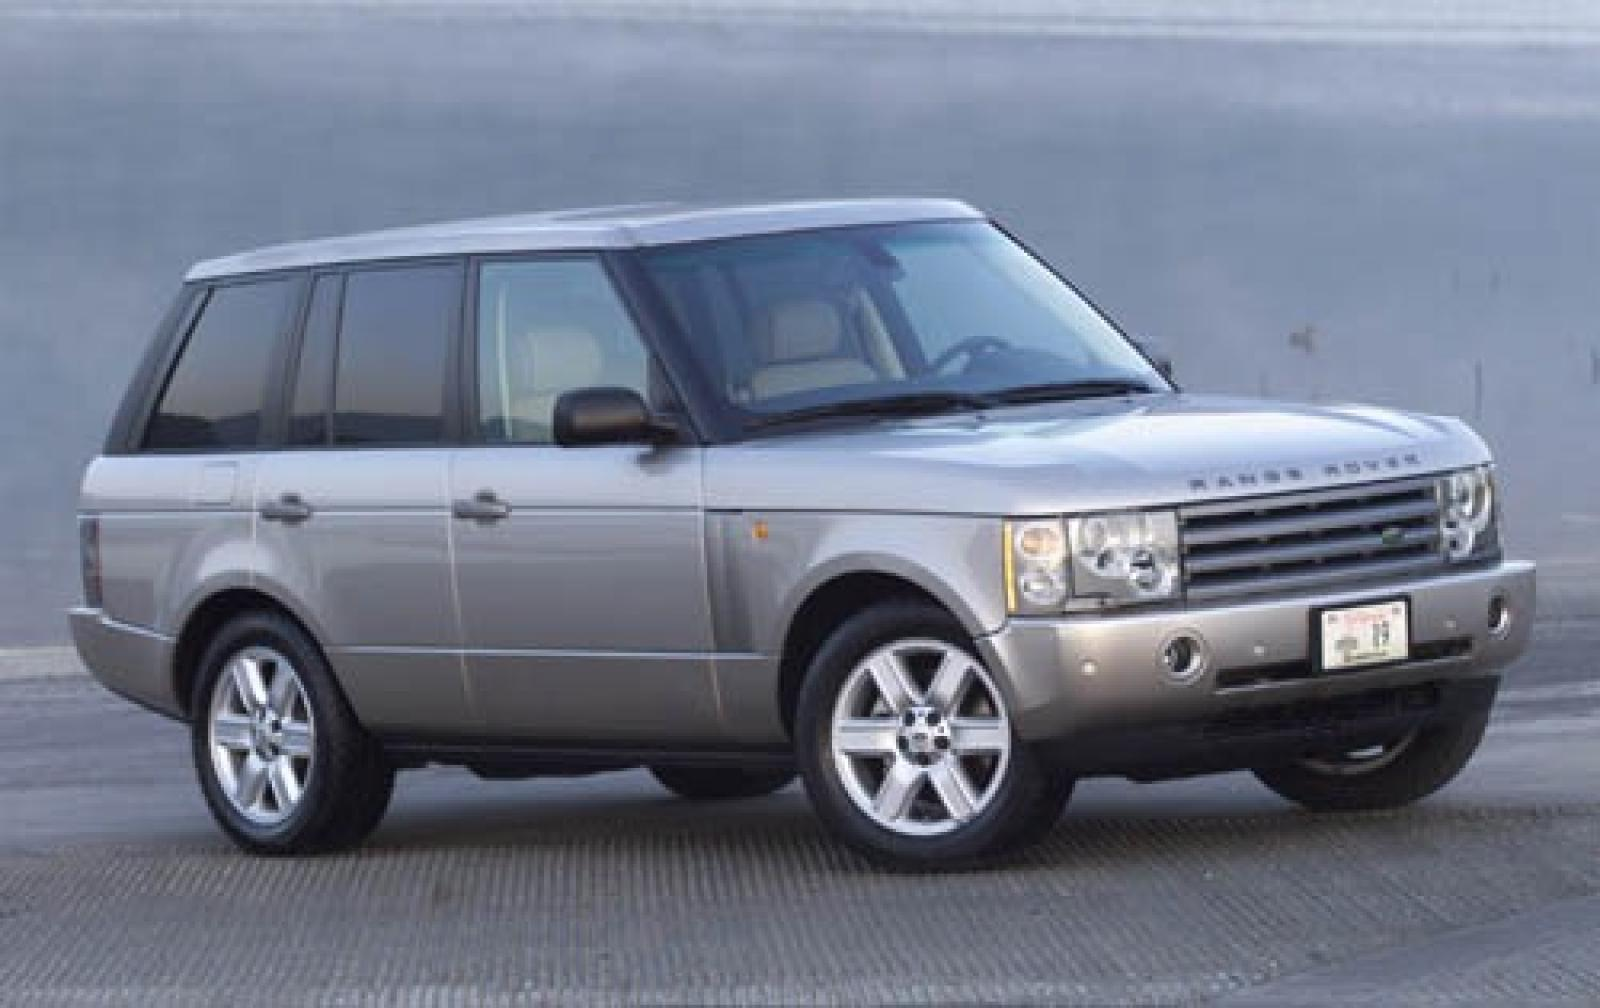 Rover range rover 2005 : 2005 Land Rover Range Rover - Information and photos - ZombieDrive